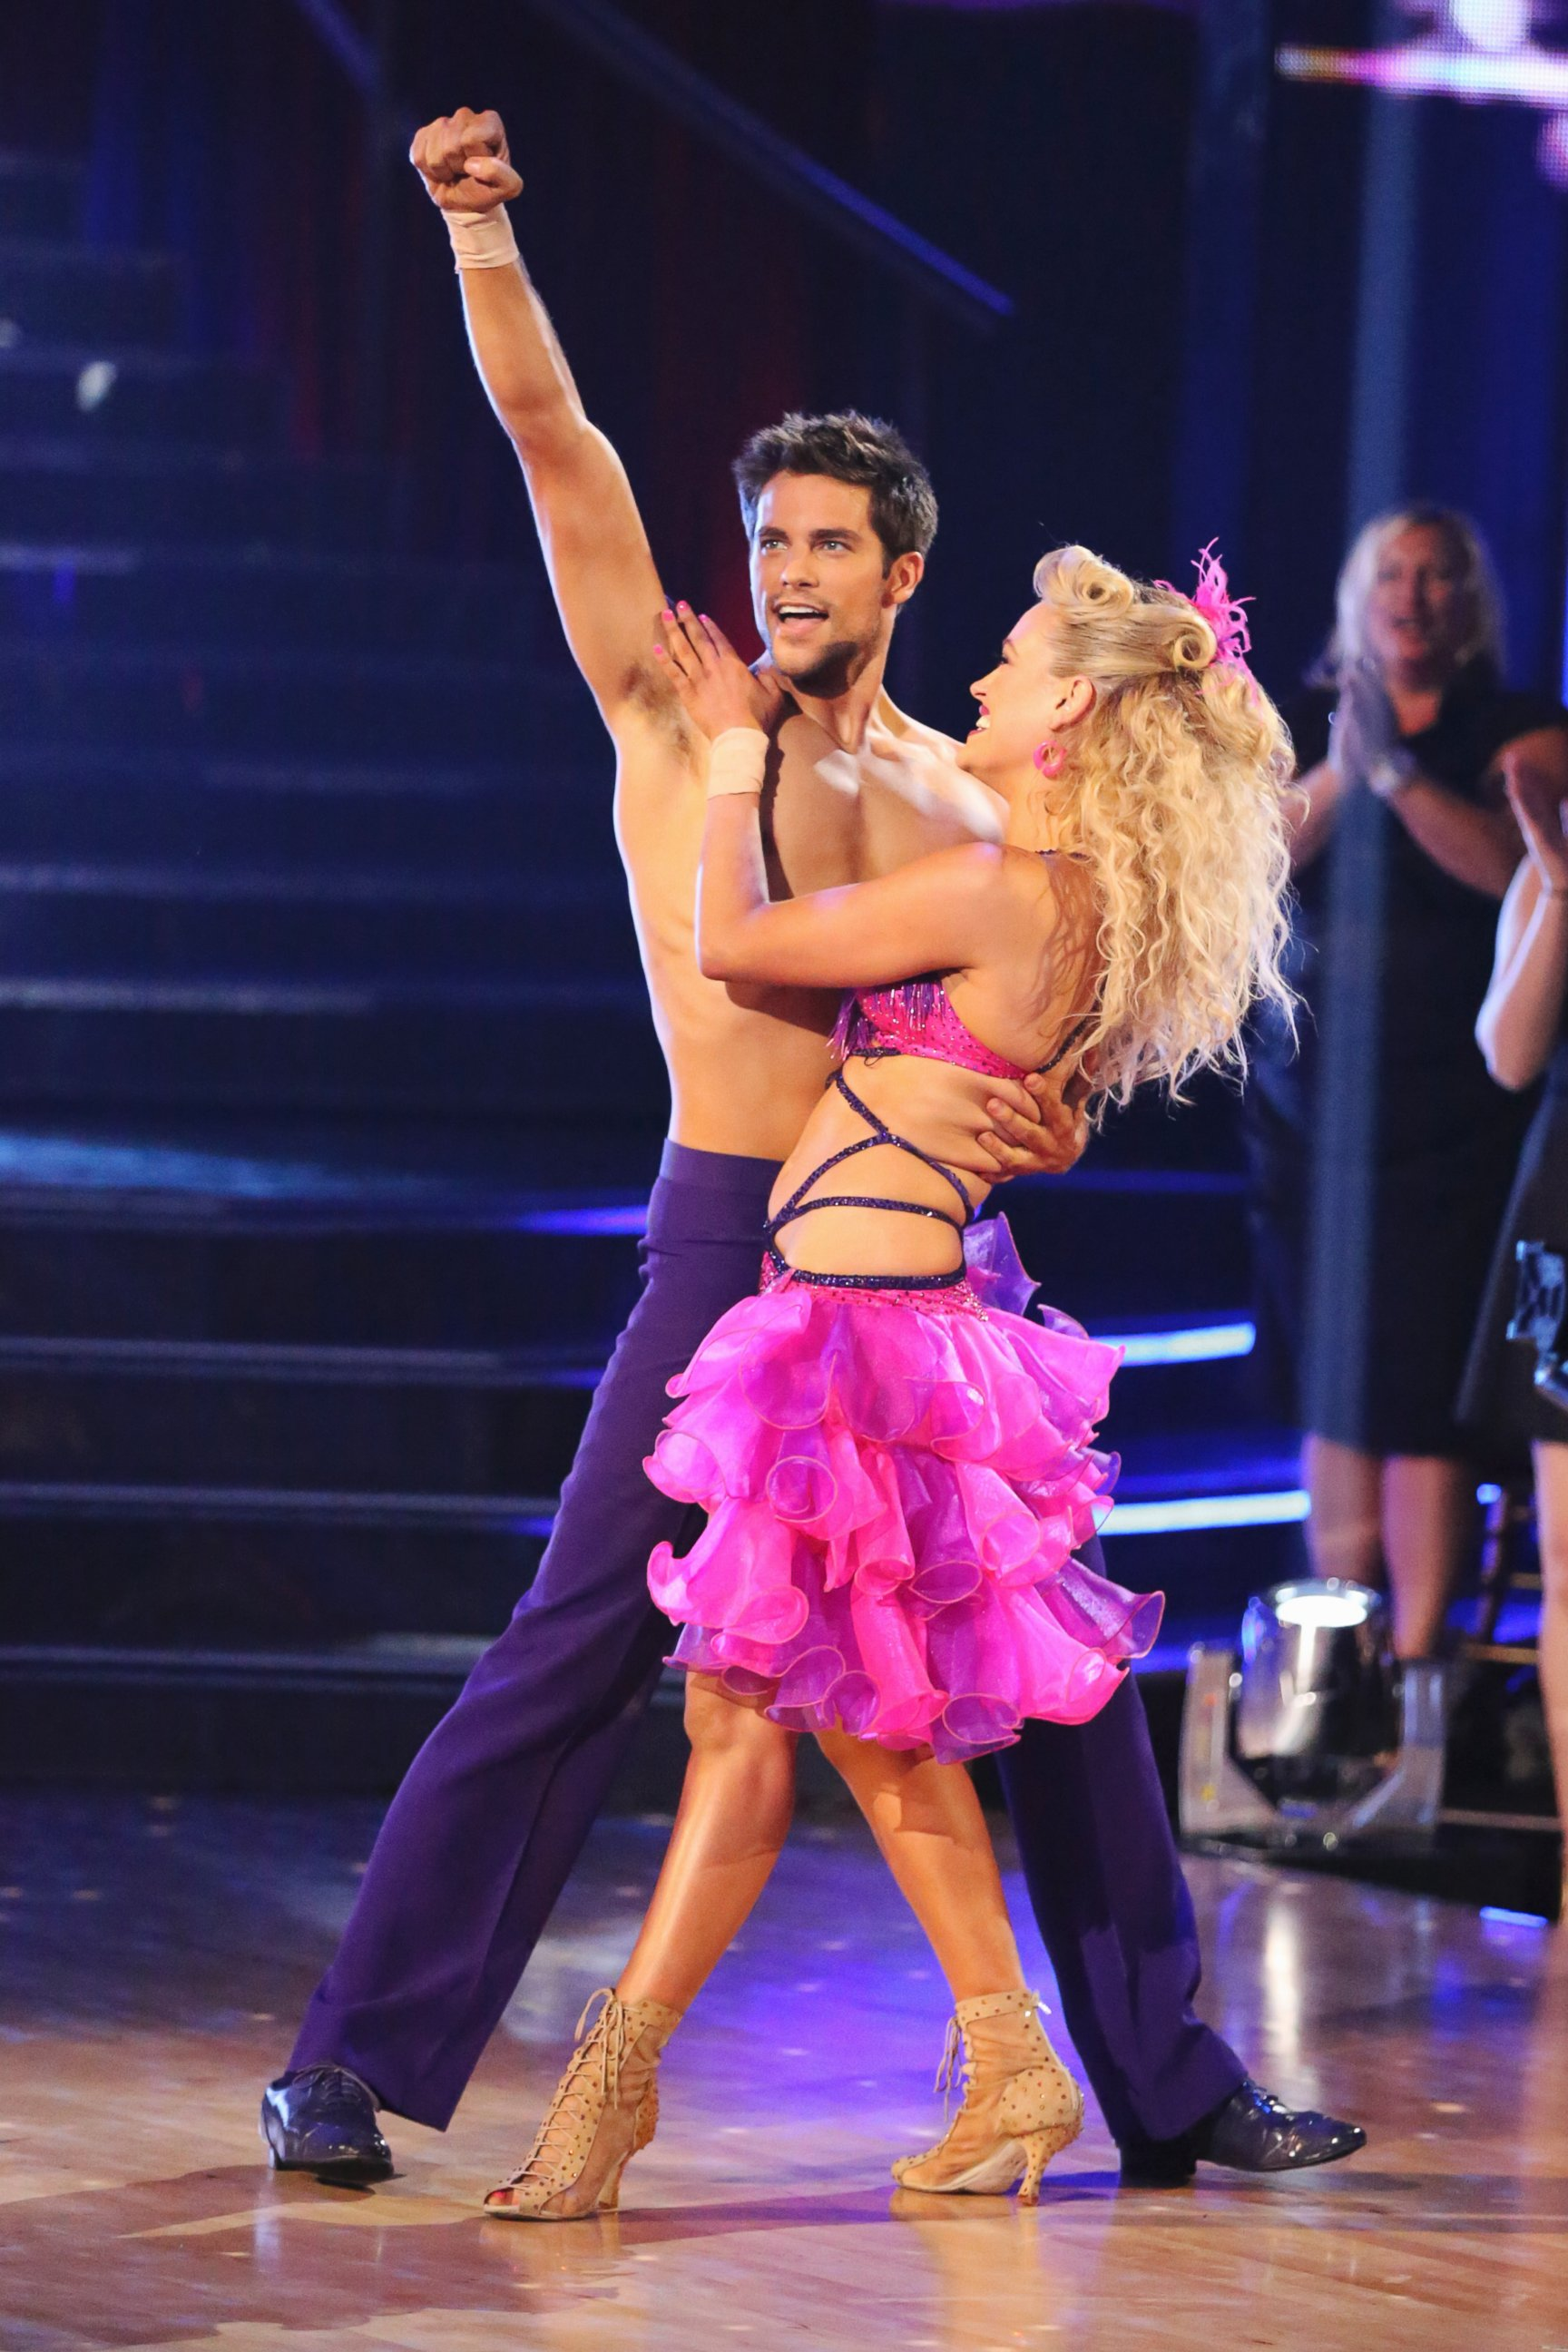 'Dancing With the Stars': Actor Brant Daugherty Booted From Ballroom - ABC News